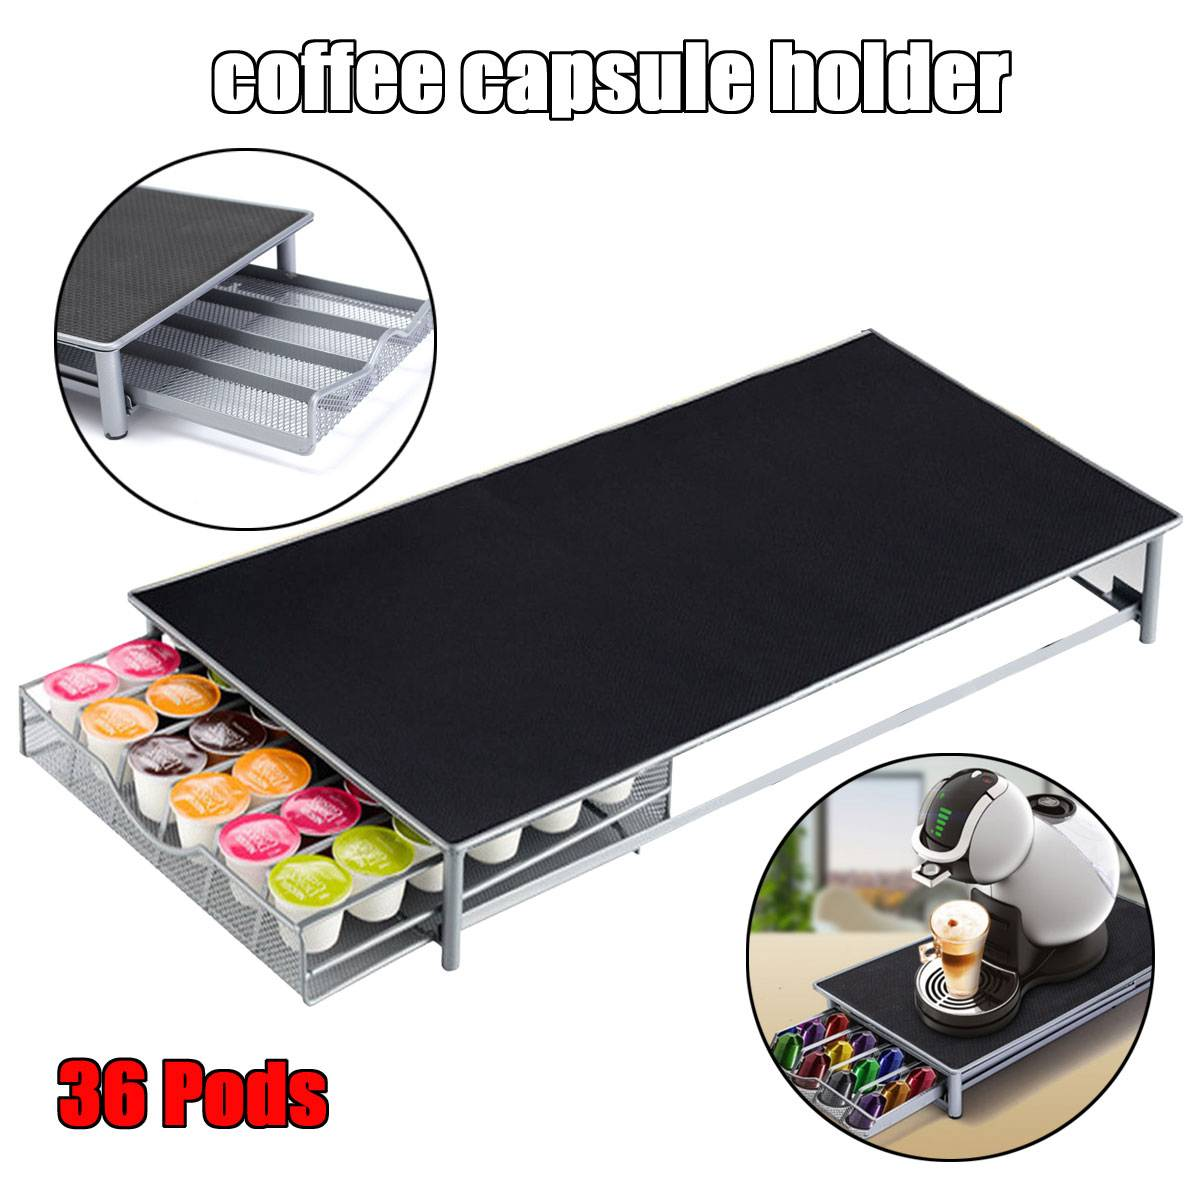 Stainless Steel 36 Cups Coffee Capsules Shelves Nespresso Coffee Capsules Pods Holder Storage Stand Rack Drawers Organization